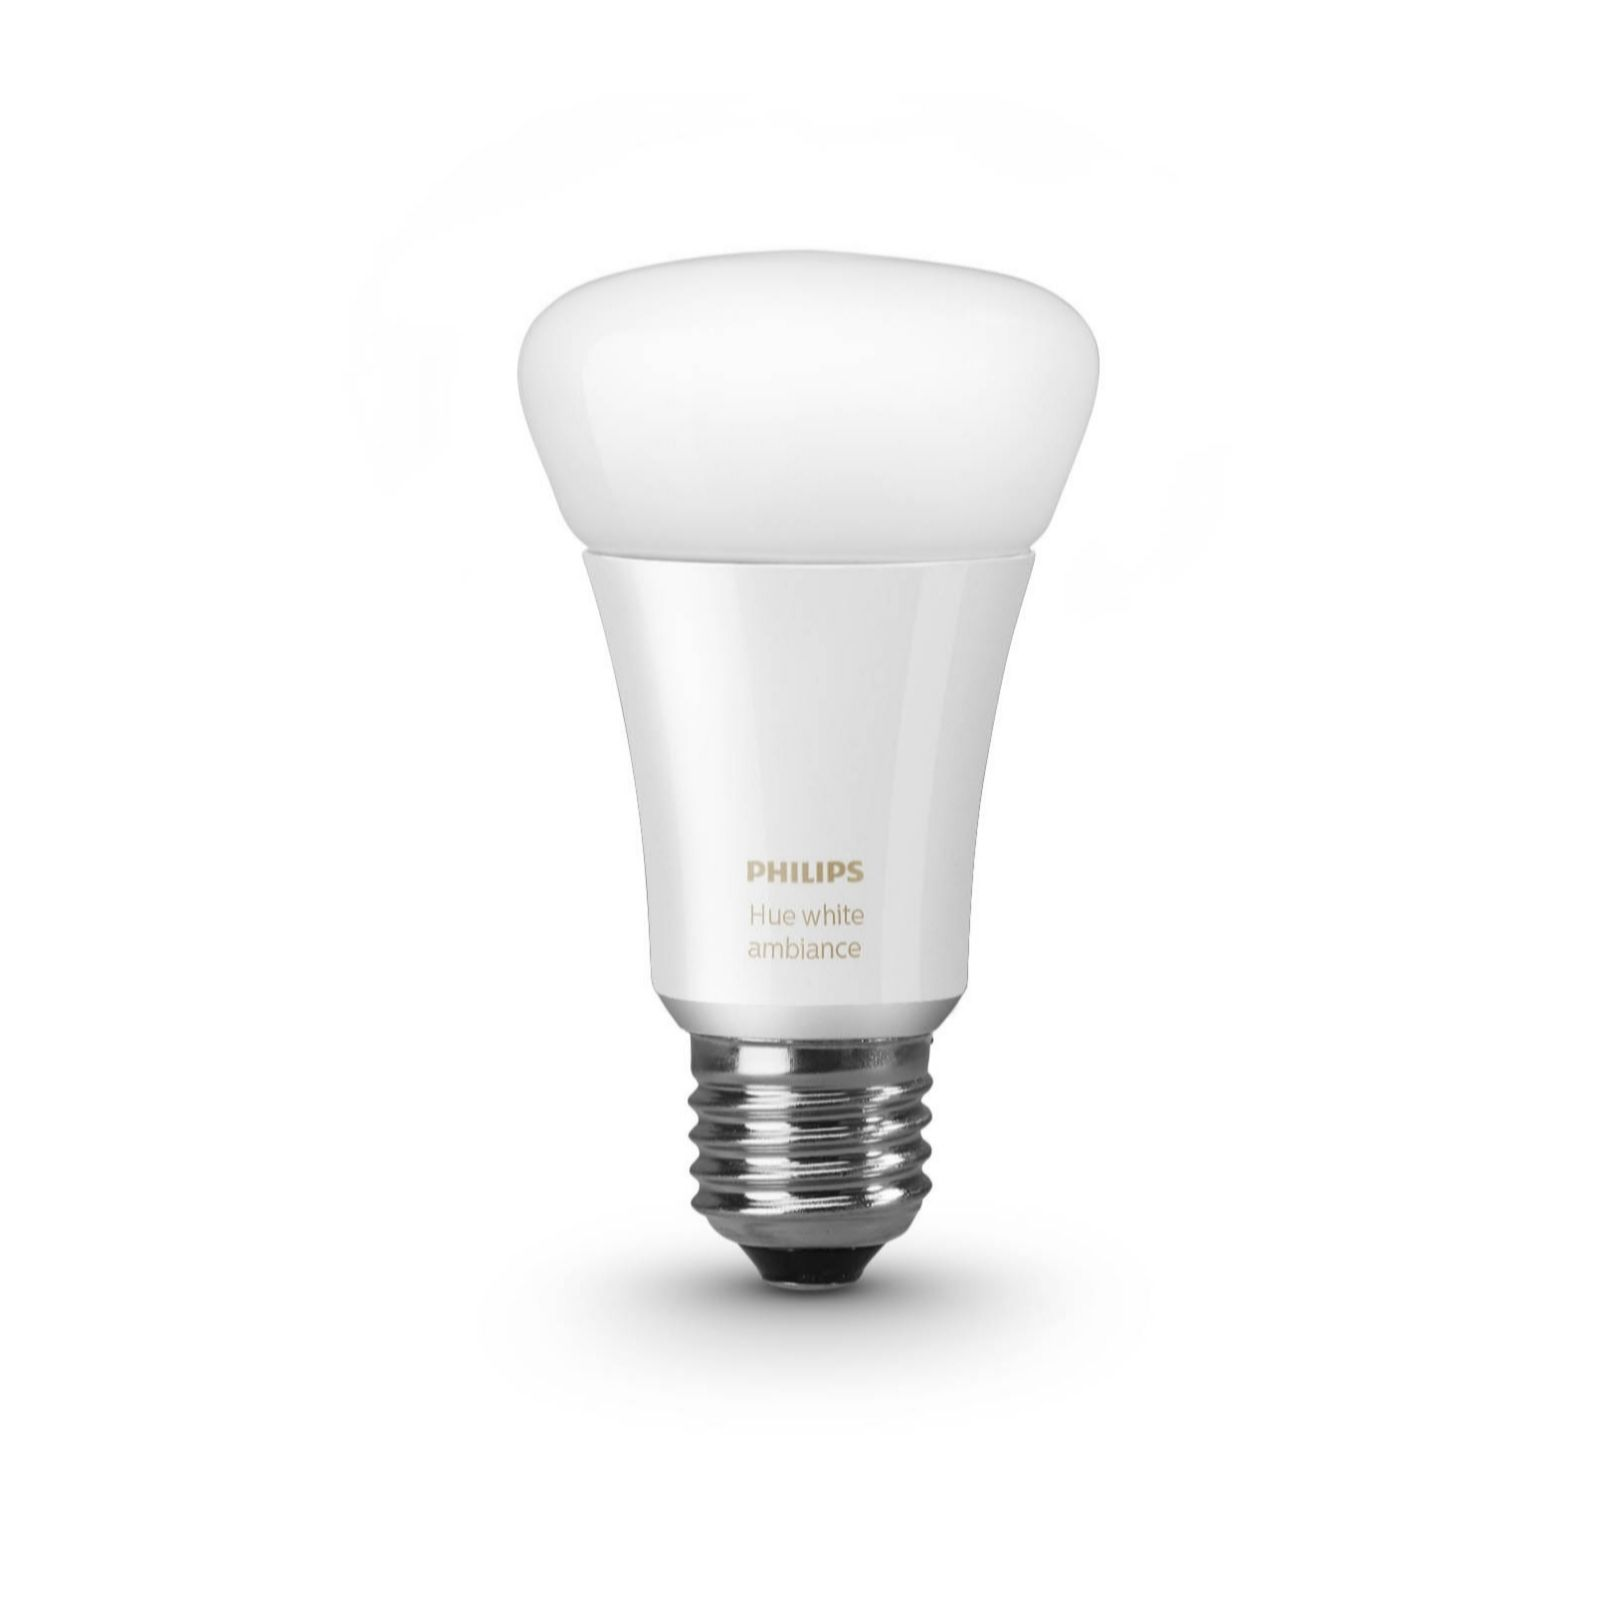 Hue Fitting Philips Hue White Ambiance Extension Led Bulb Screw Fitting Qvc Uk